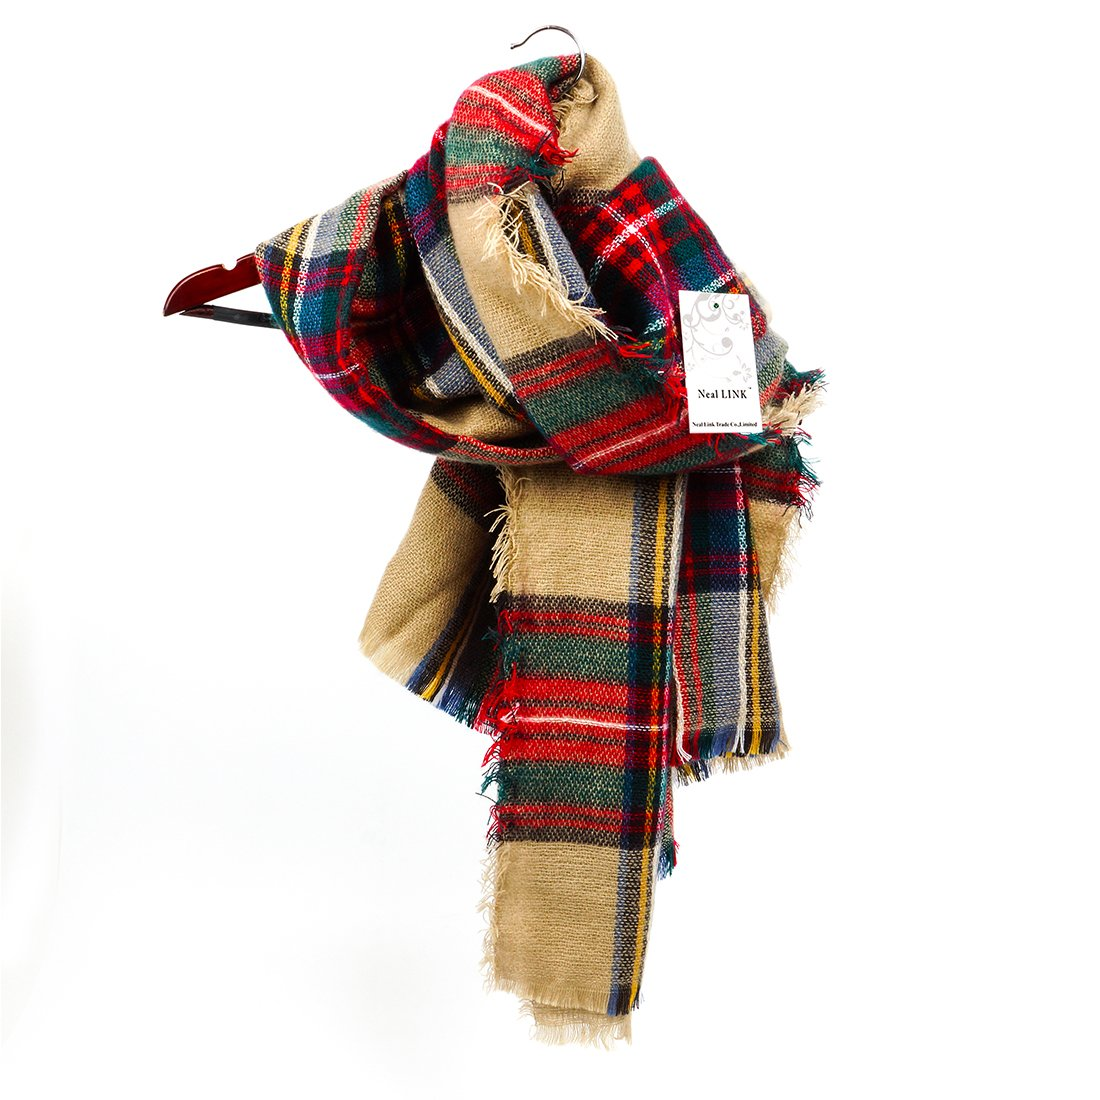 Women's Cozy Tartan Blanket Scarf Wrap Shawl Neck Stole Warm Plaid Checked Pashmina by Neal LINK (Image #4)